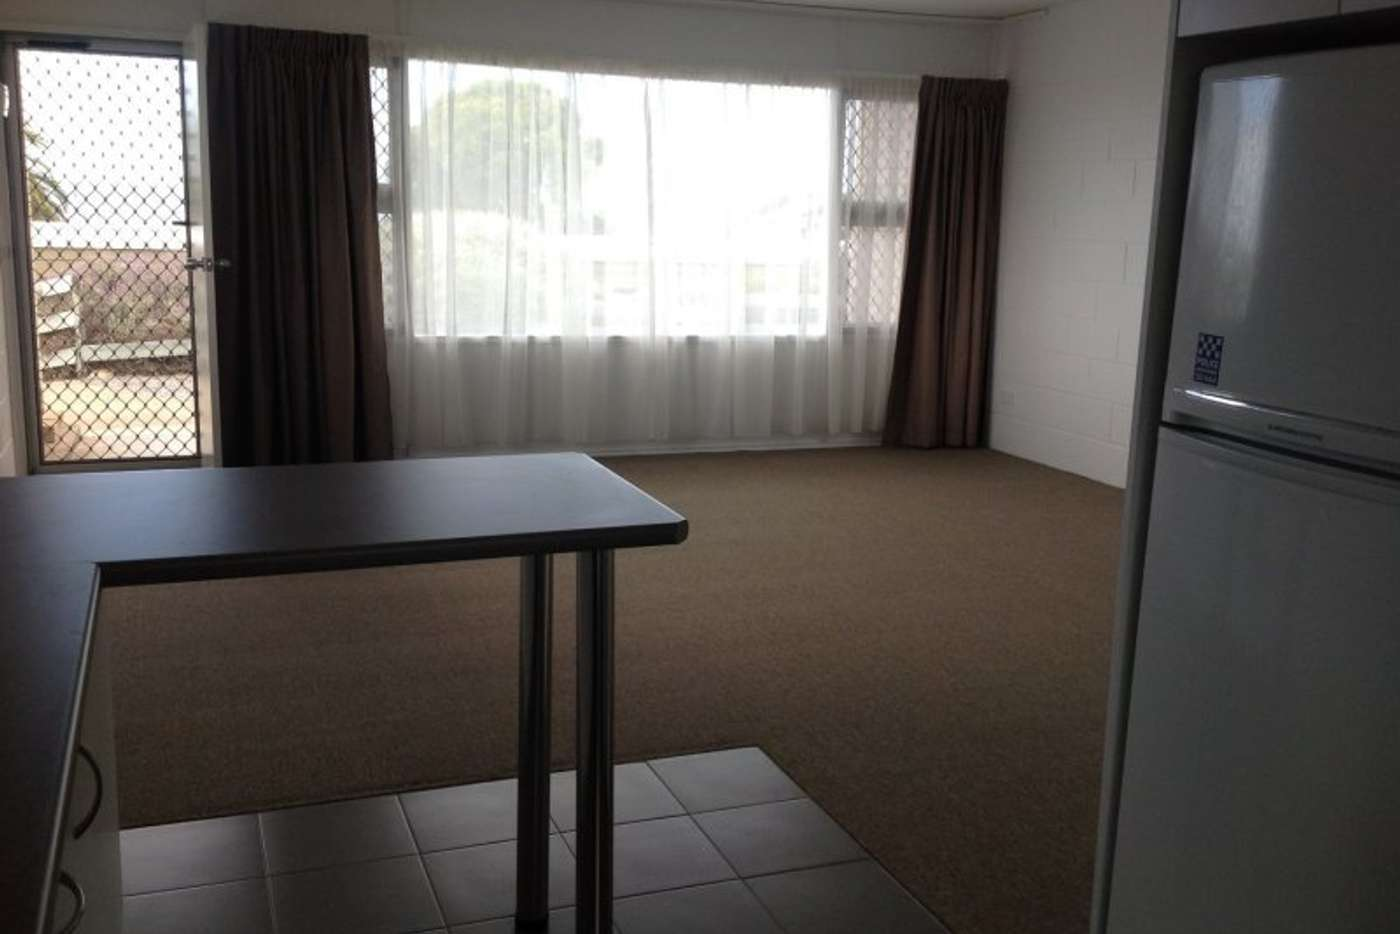 Sixth view of Homely unit listing, 3/112 London Street, Port Lincoln SA 5606